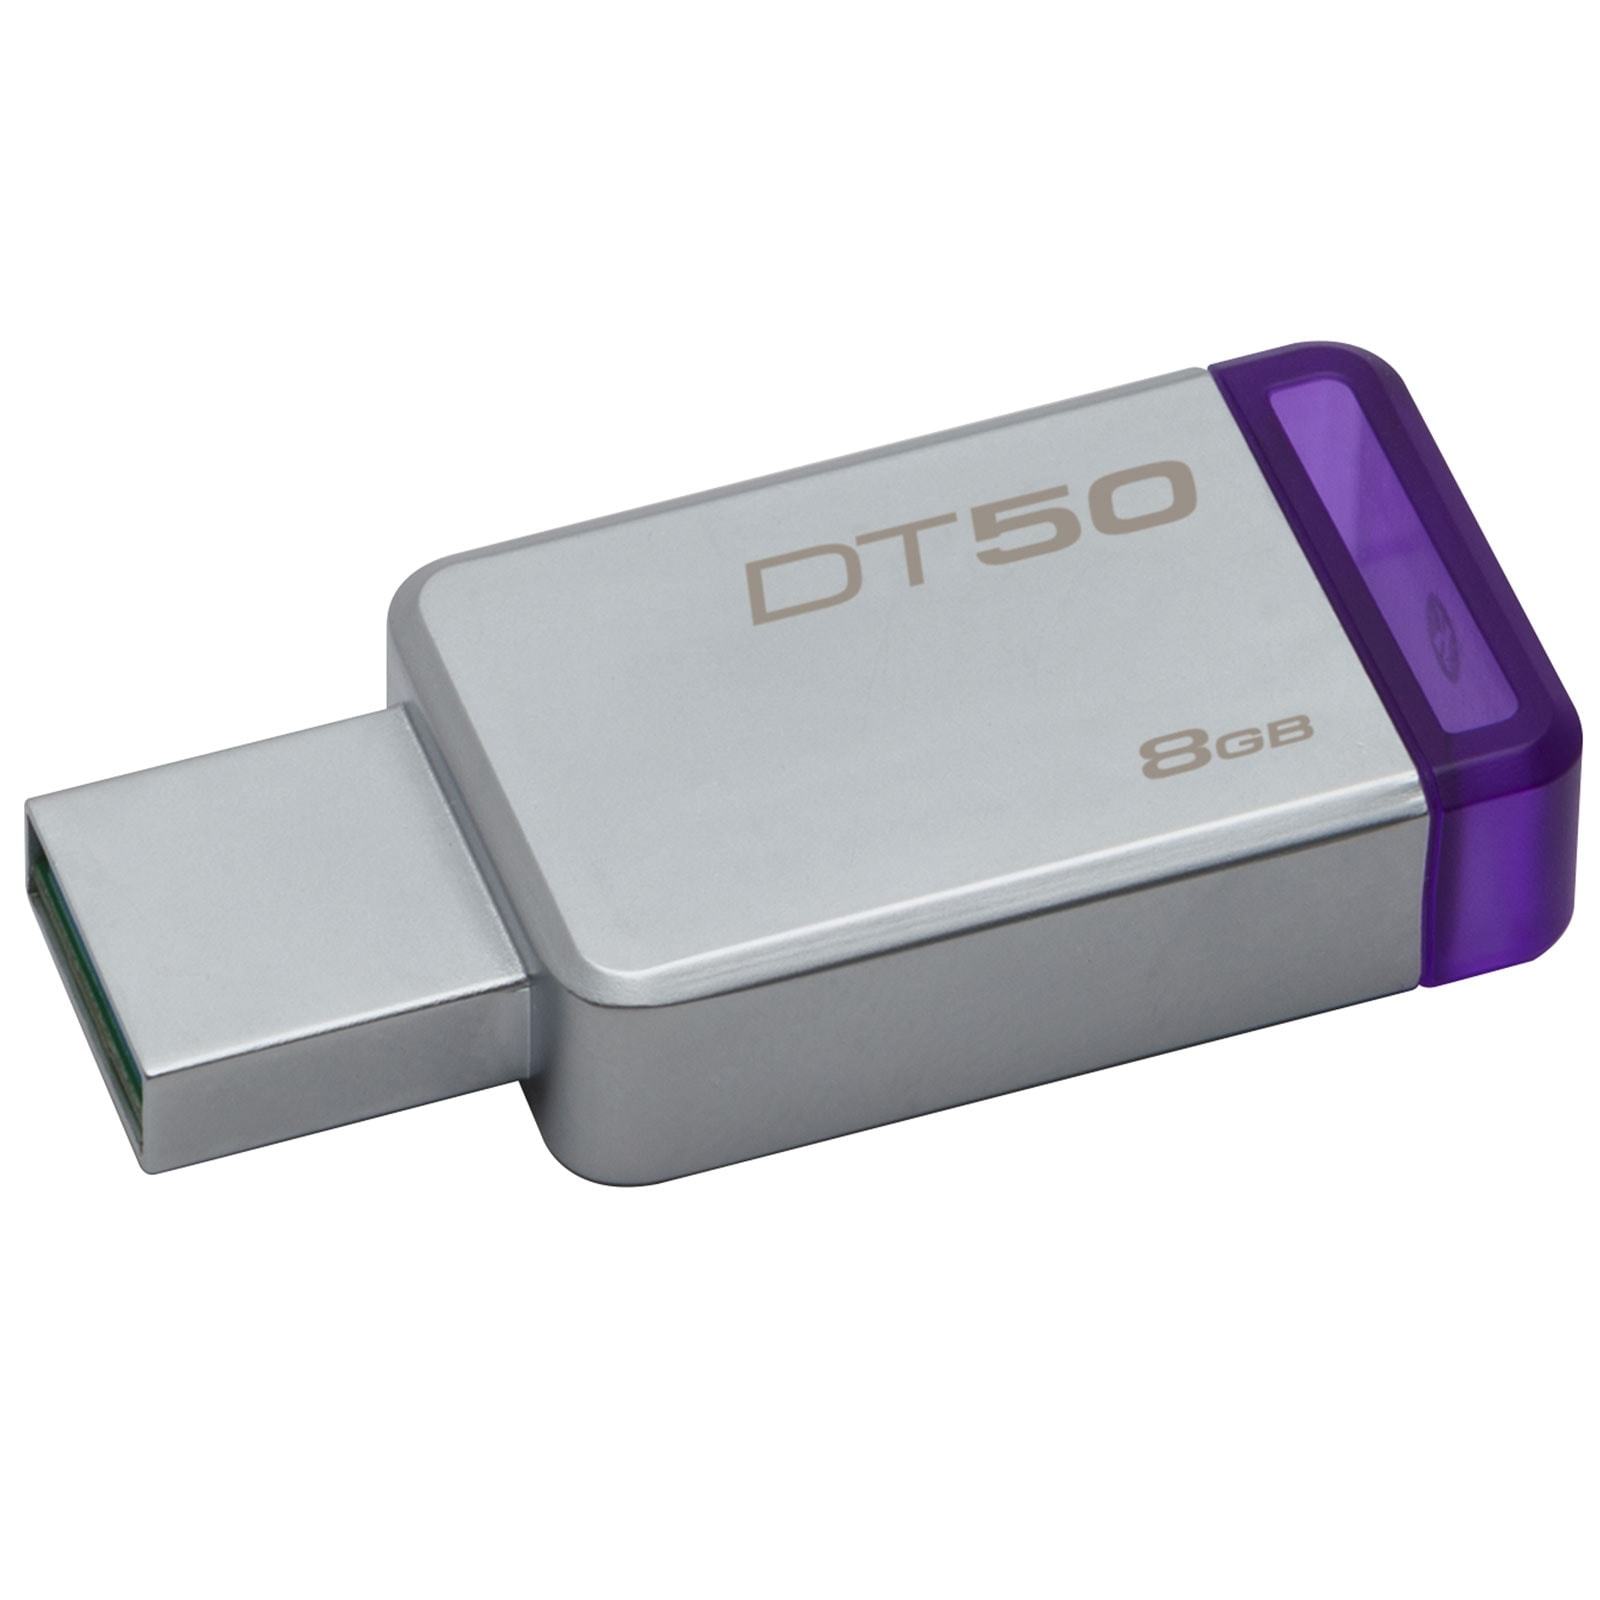 Kingston 8Go USB 3.1 - Clé USB Kingston - Cybertek.fr - 0